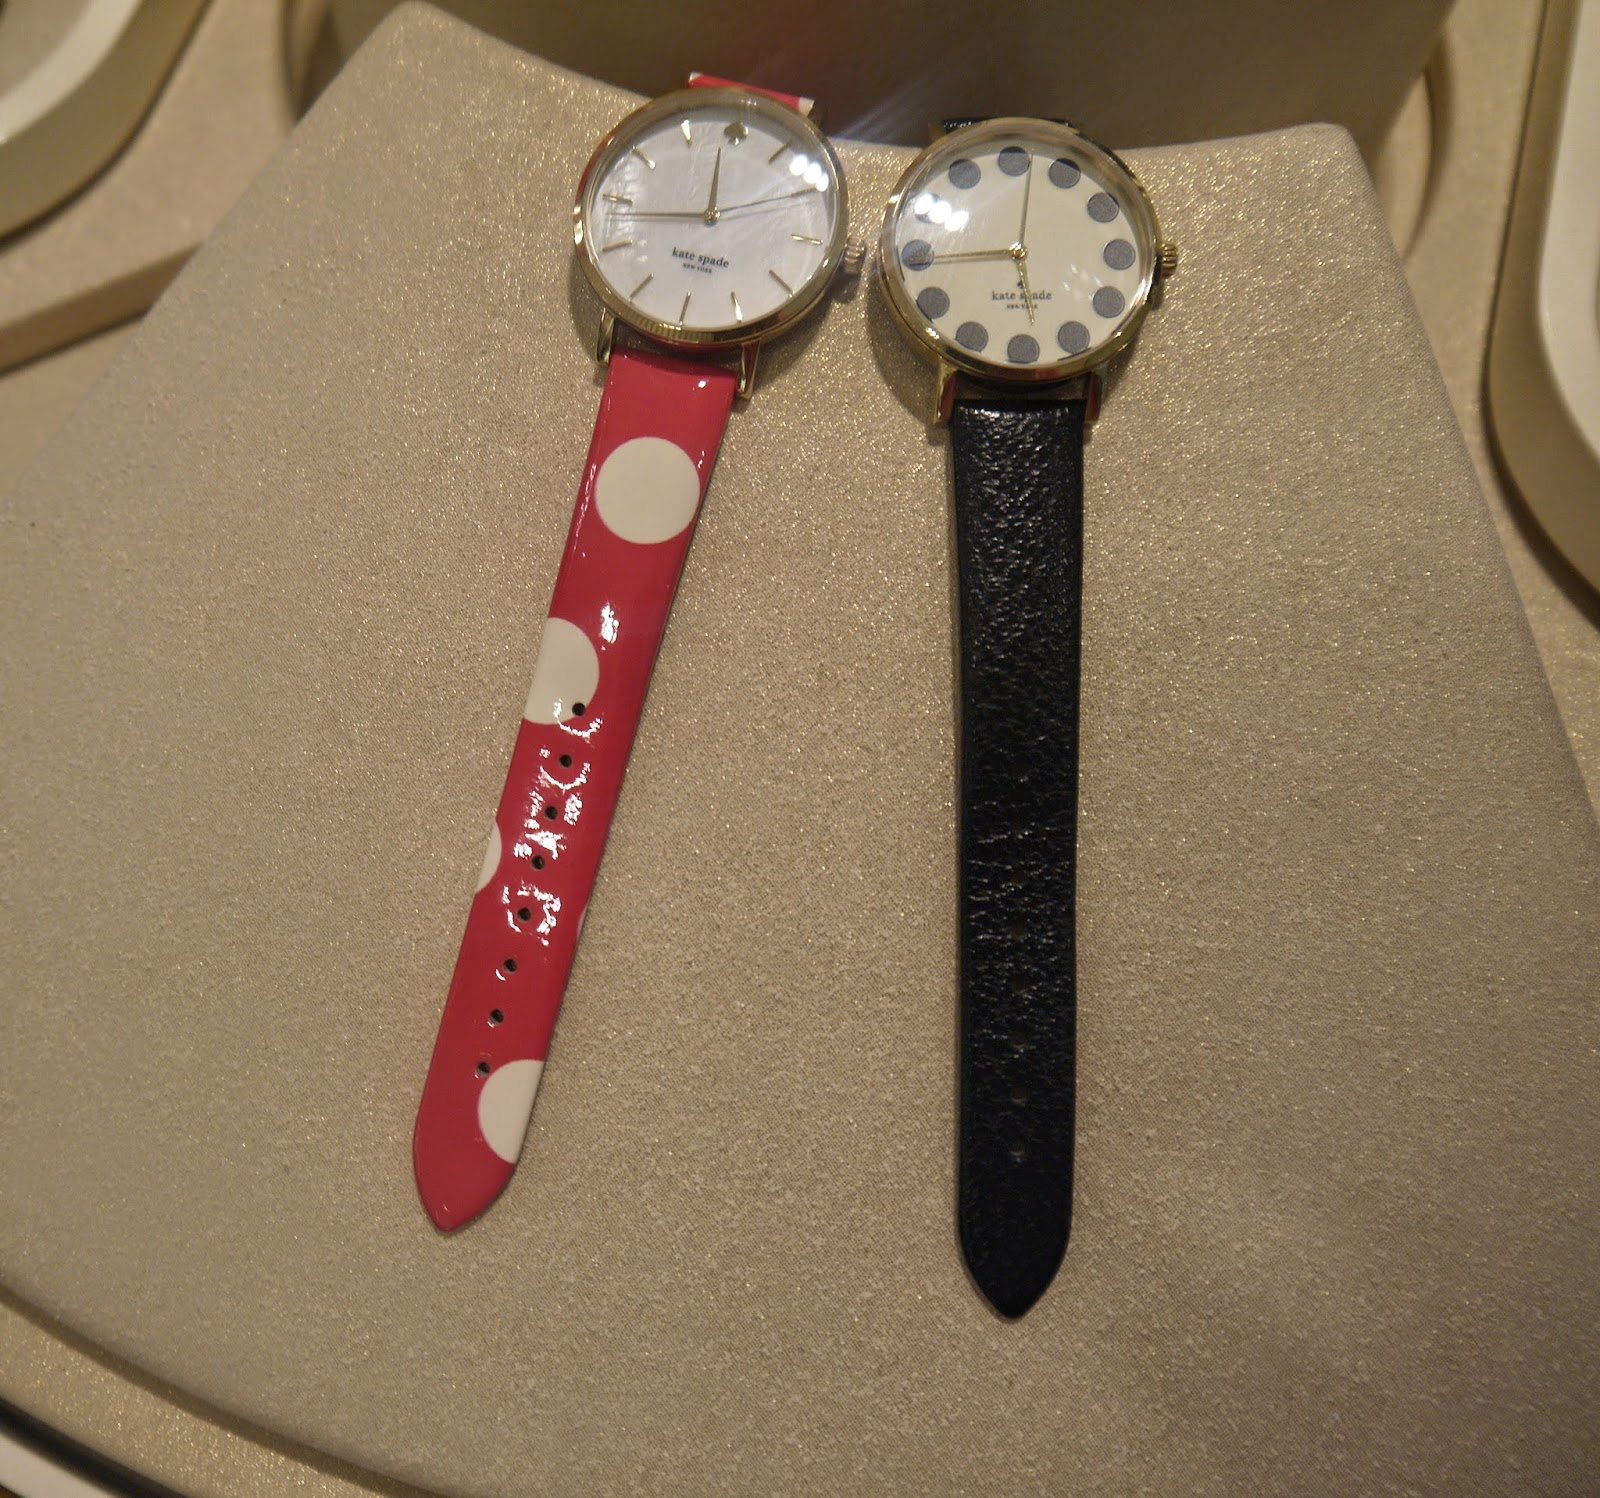 Colourful Kate Spade Watches on Display